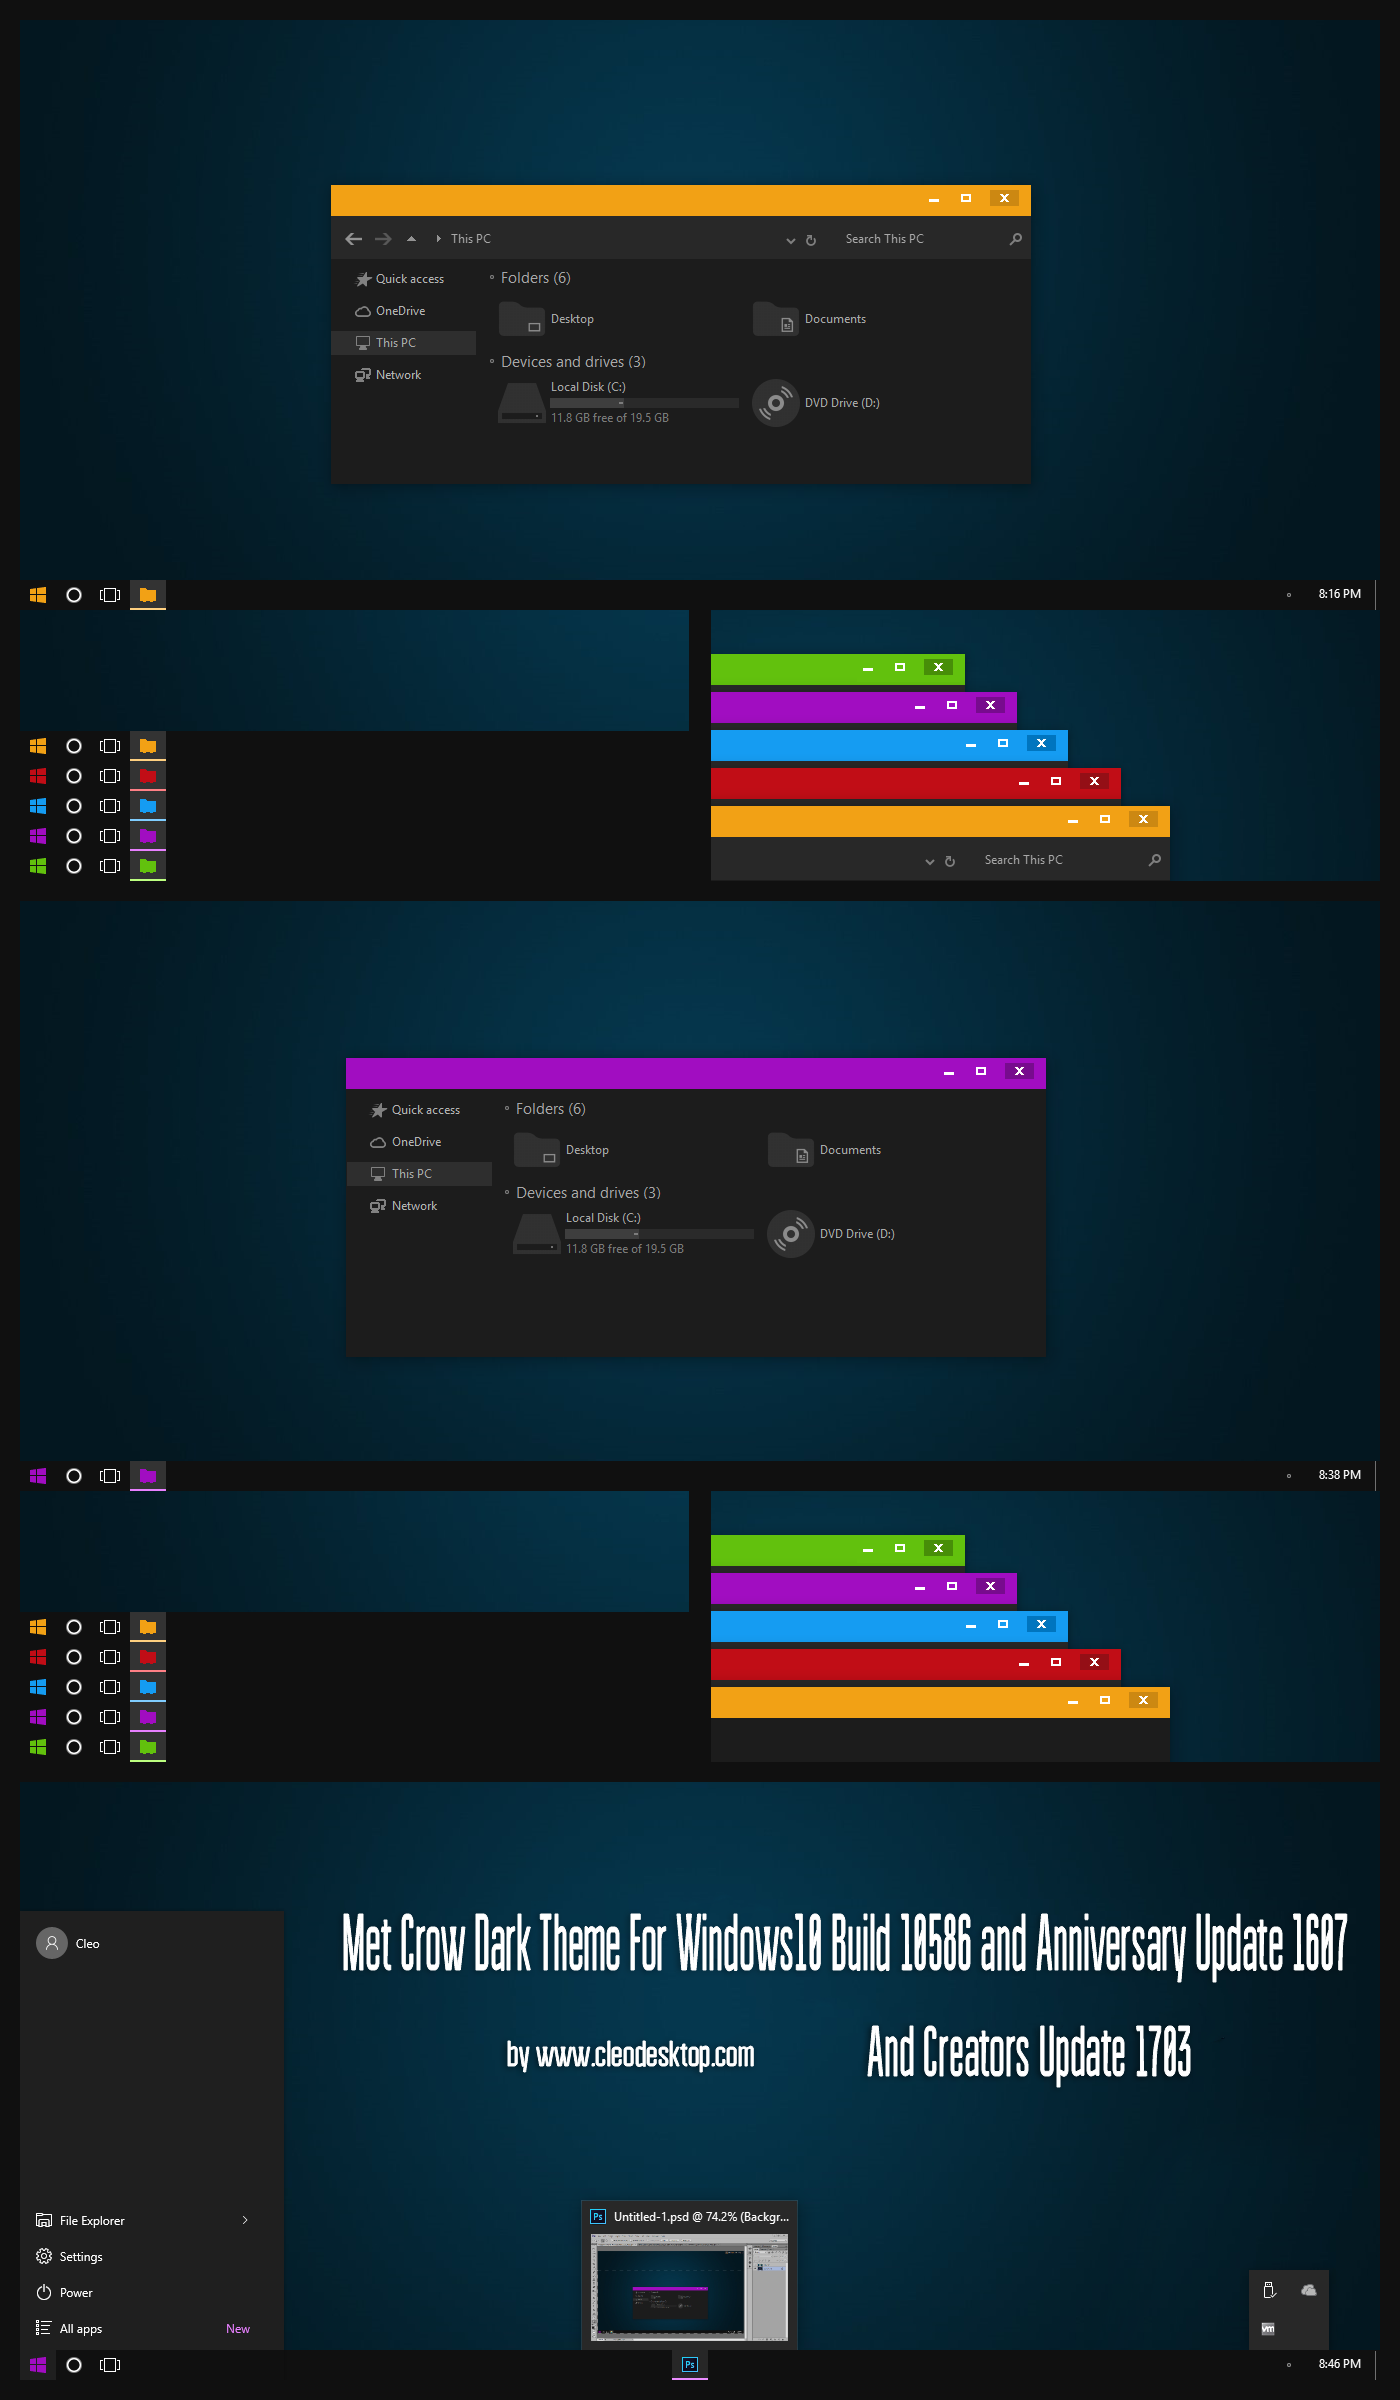 Met Crow Dark Theme Win10 Creators Update by Cleodesktop